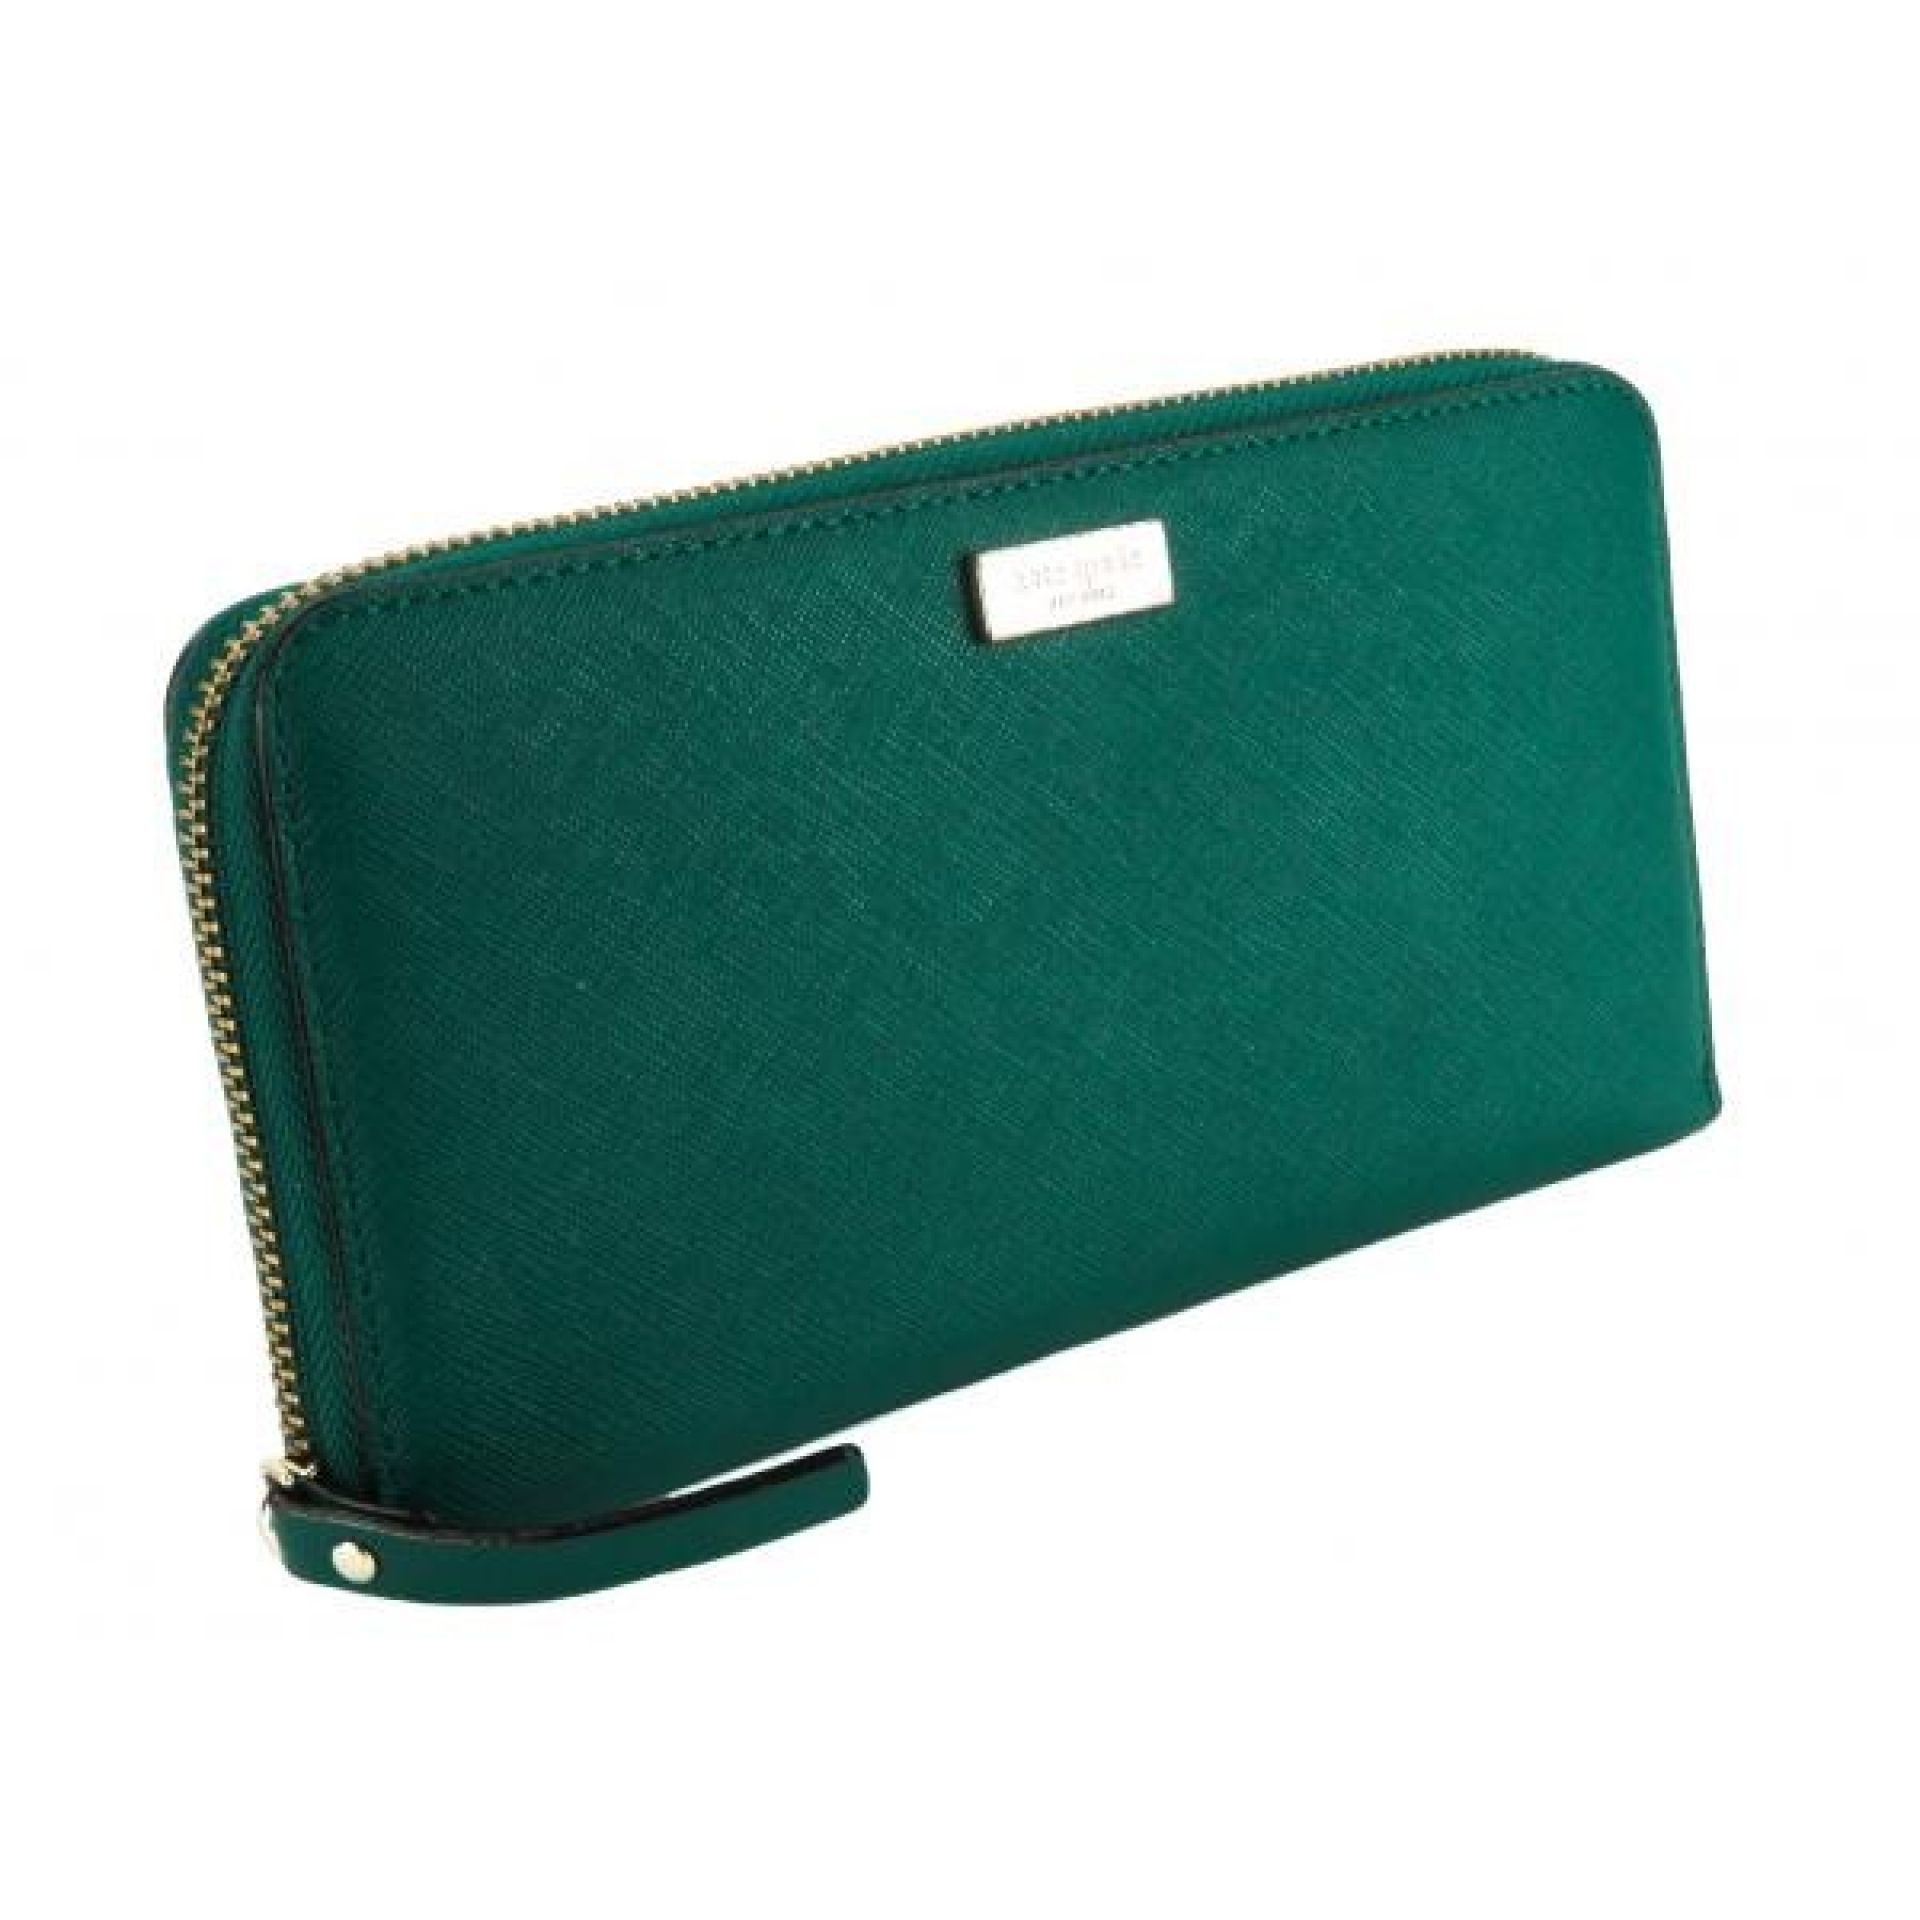 Kate Spade Teal Saffiano Leather Laurel Way Neda Zip Wallet